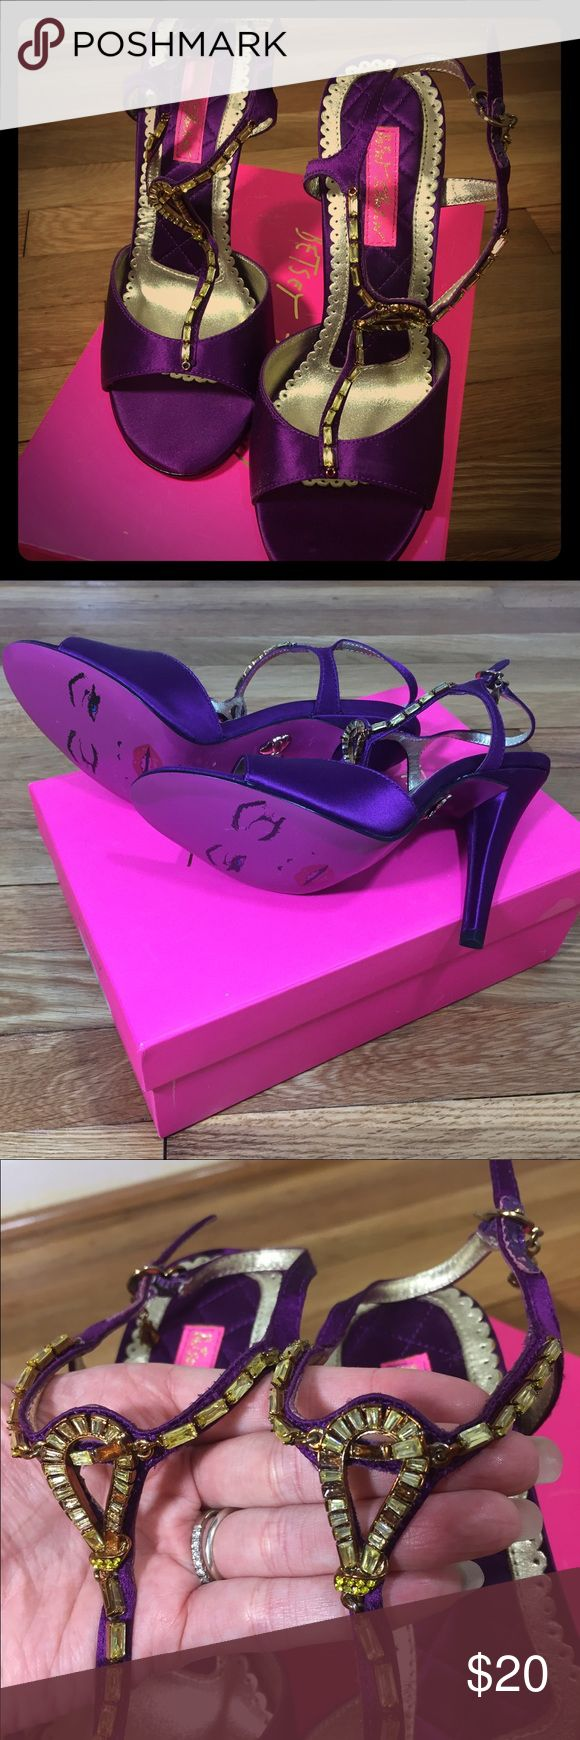 Betsey Johnson purple strappy heels Betsey Johnson satin purple heels. Great for a formal occasion! Size 7 1/2, approx 3 inch heel. Brand new in box! Please note the closeup shows a few rhinestones came out, but it isn't noticeable unless you are examining them up close. Betsey Johnson Shoes Heels